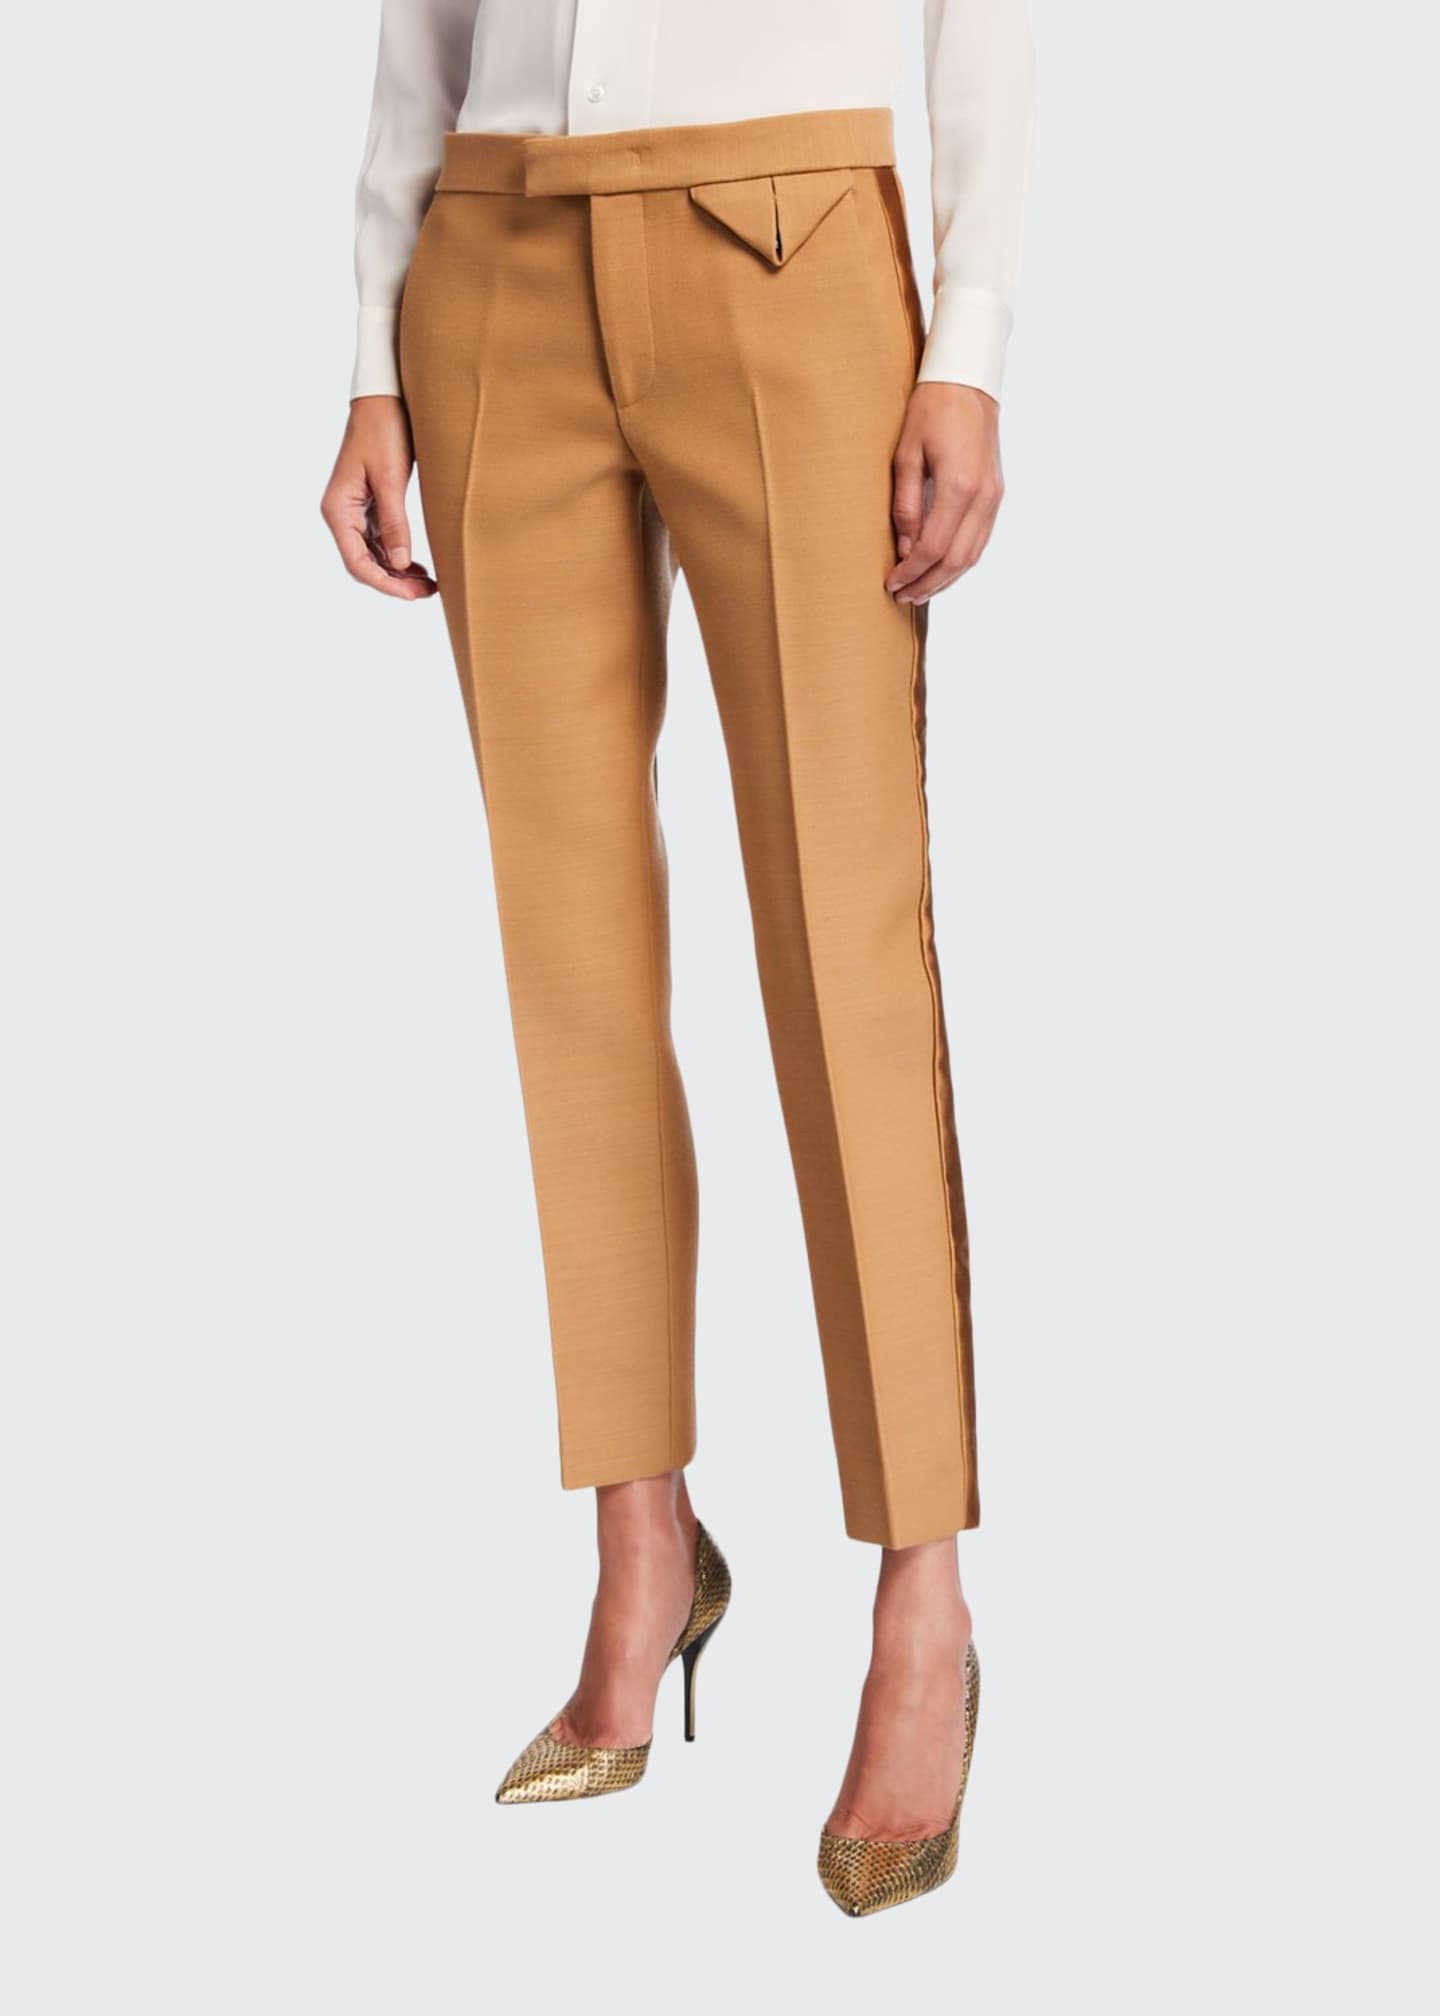 Bottega Veneta Dry Wool Scuba Satin Tuxedo Pants